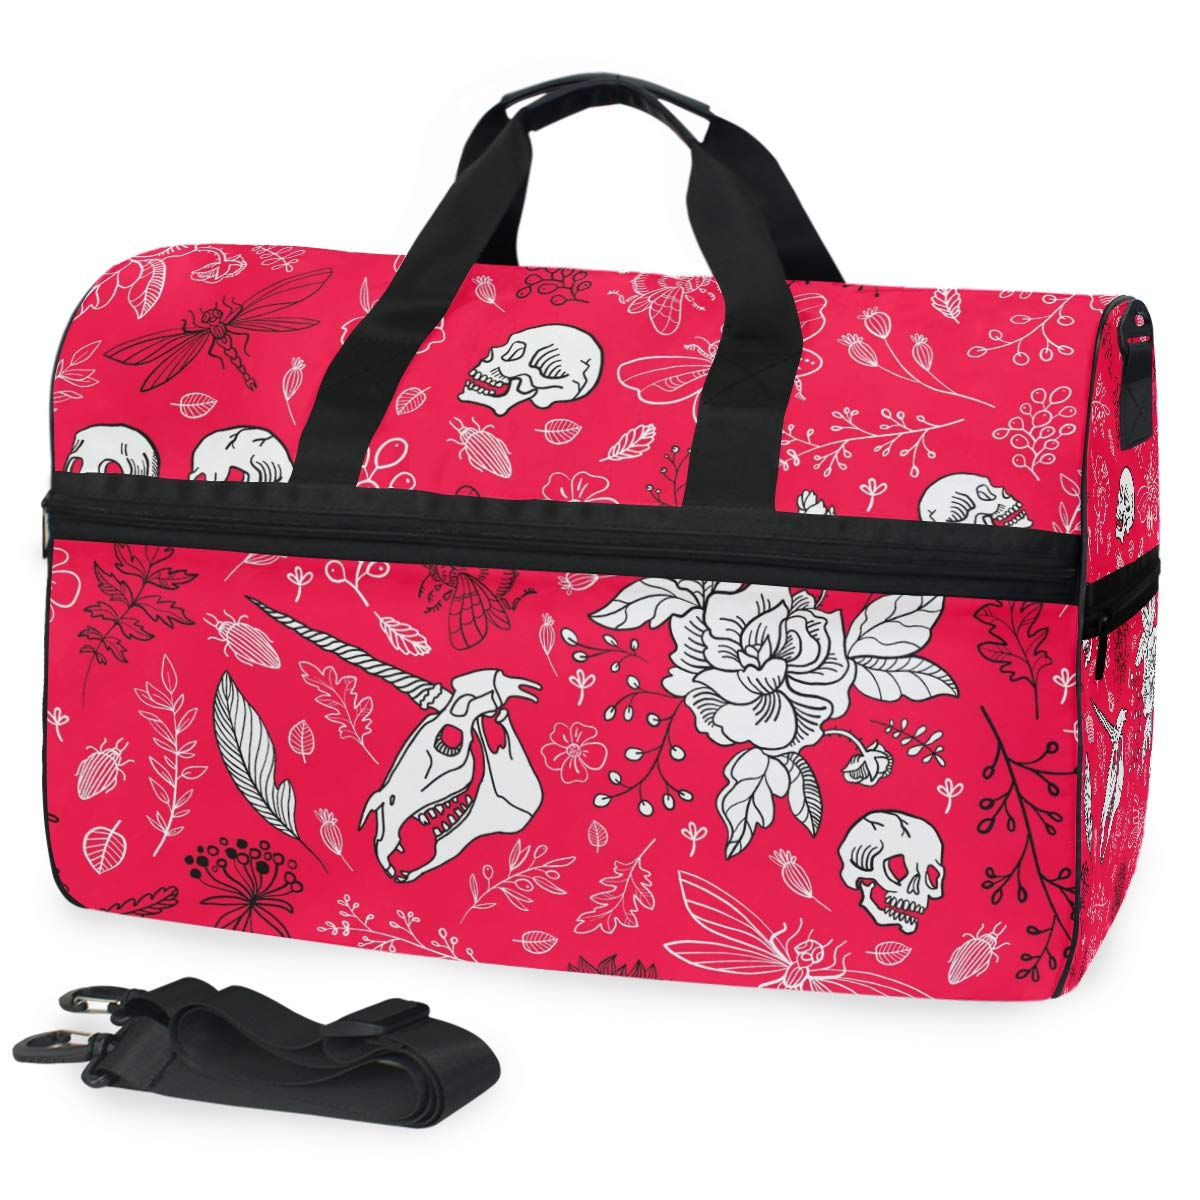 Large Capacity Travel Bag Hand Drawn Skull Flower Duffel Bag Gym Shoe Compartment Sport Tote Bags Handbag